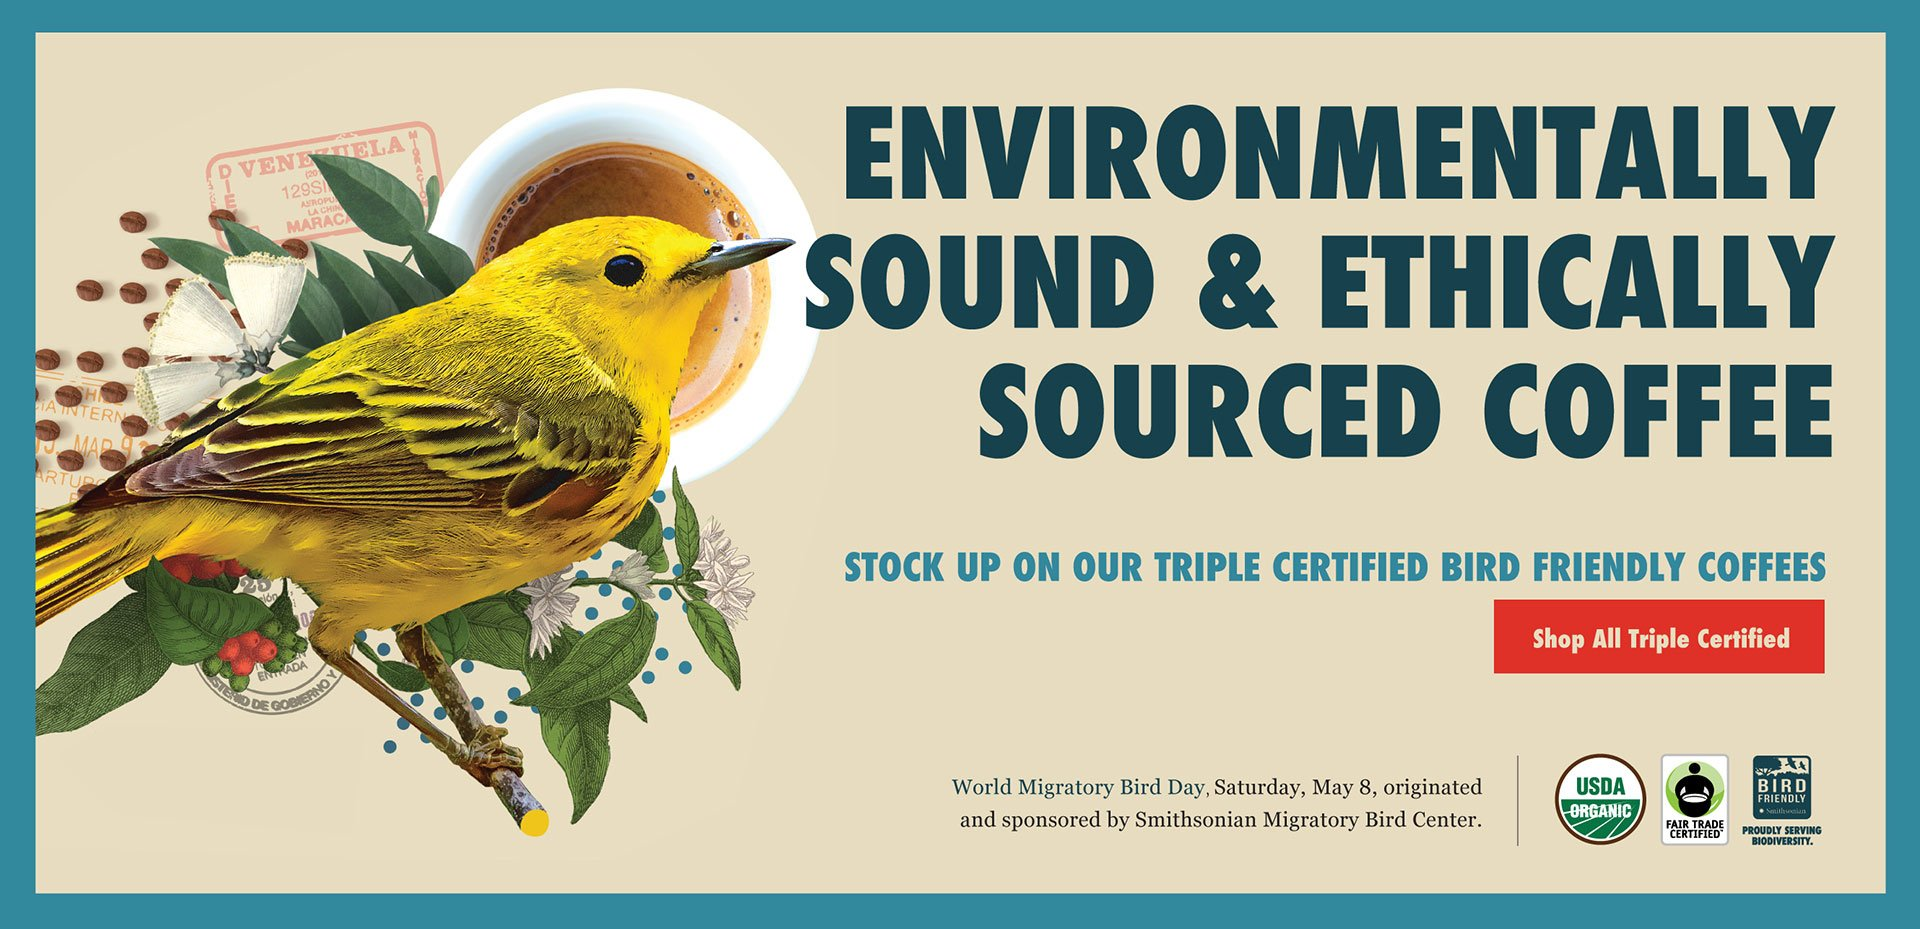 Environmentally Sound and Ethically Sourced Coffee